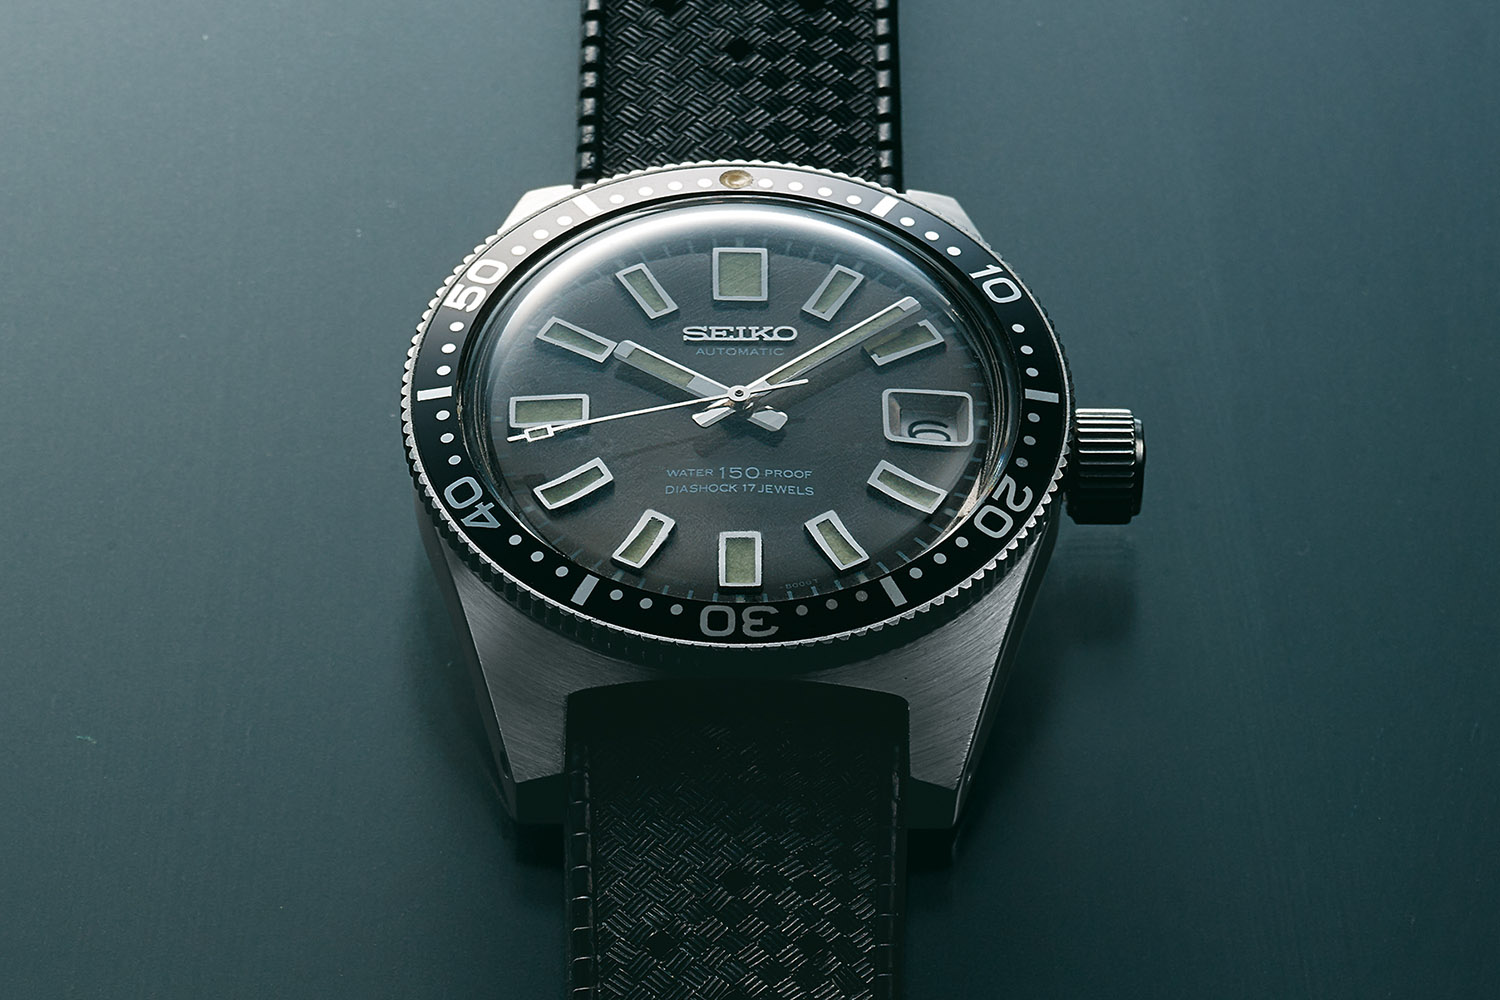 Seiko 62Mas 1965 ref 6217 - Seiko First Dive Watch